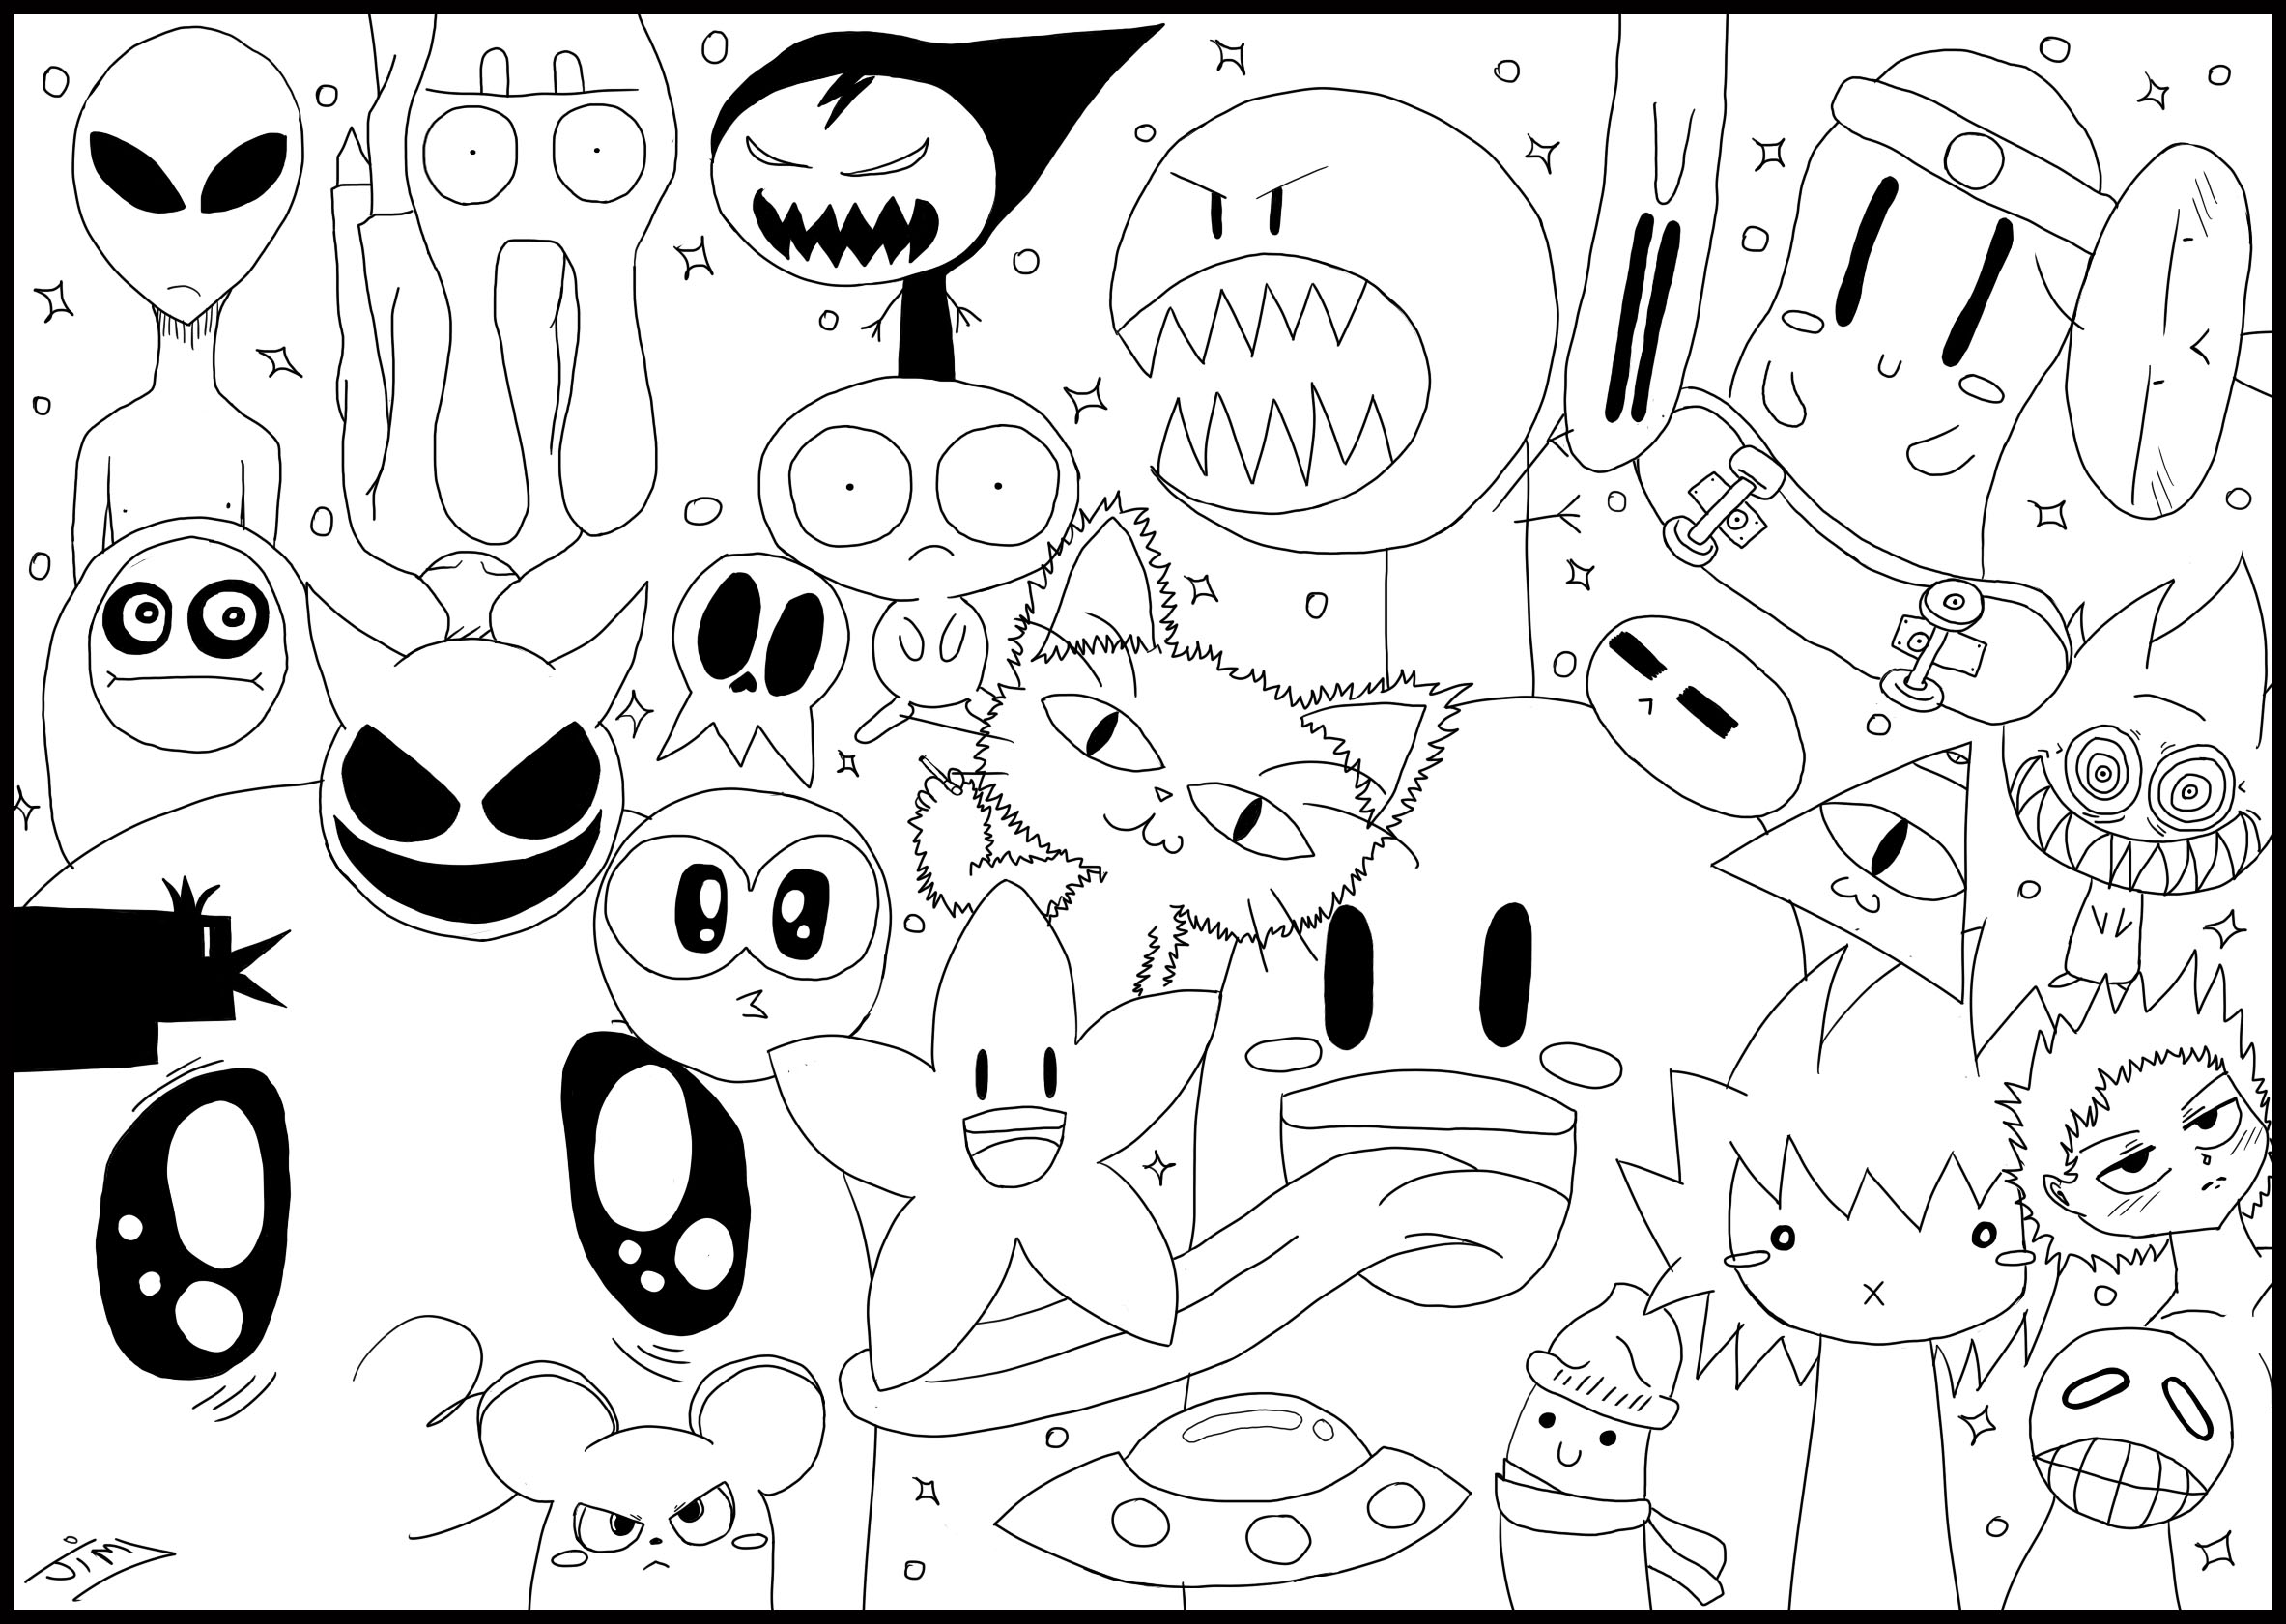 a doodle drawing with funny or scary monsters and animals from the gallery